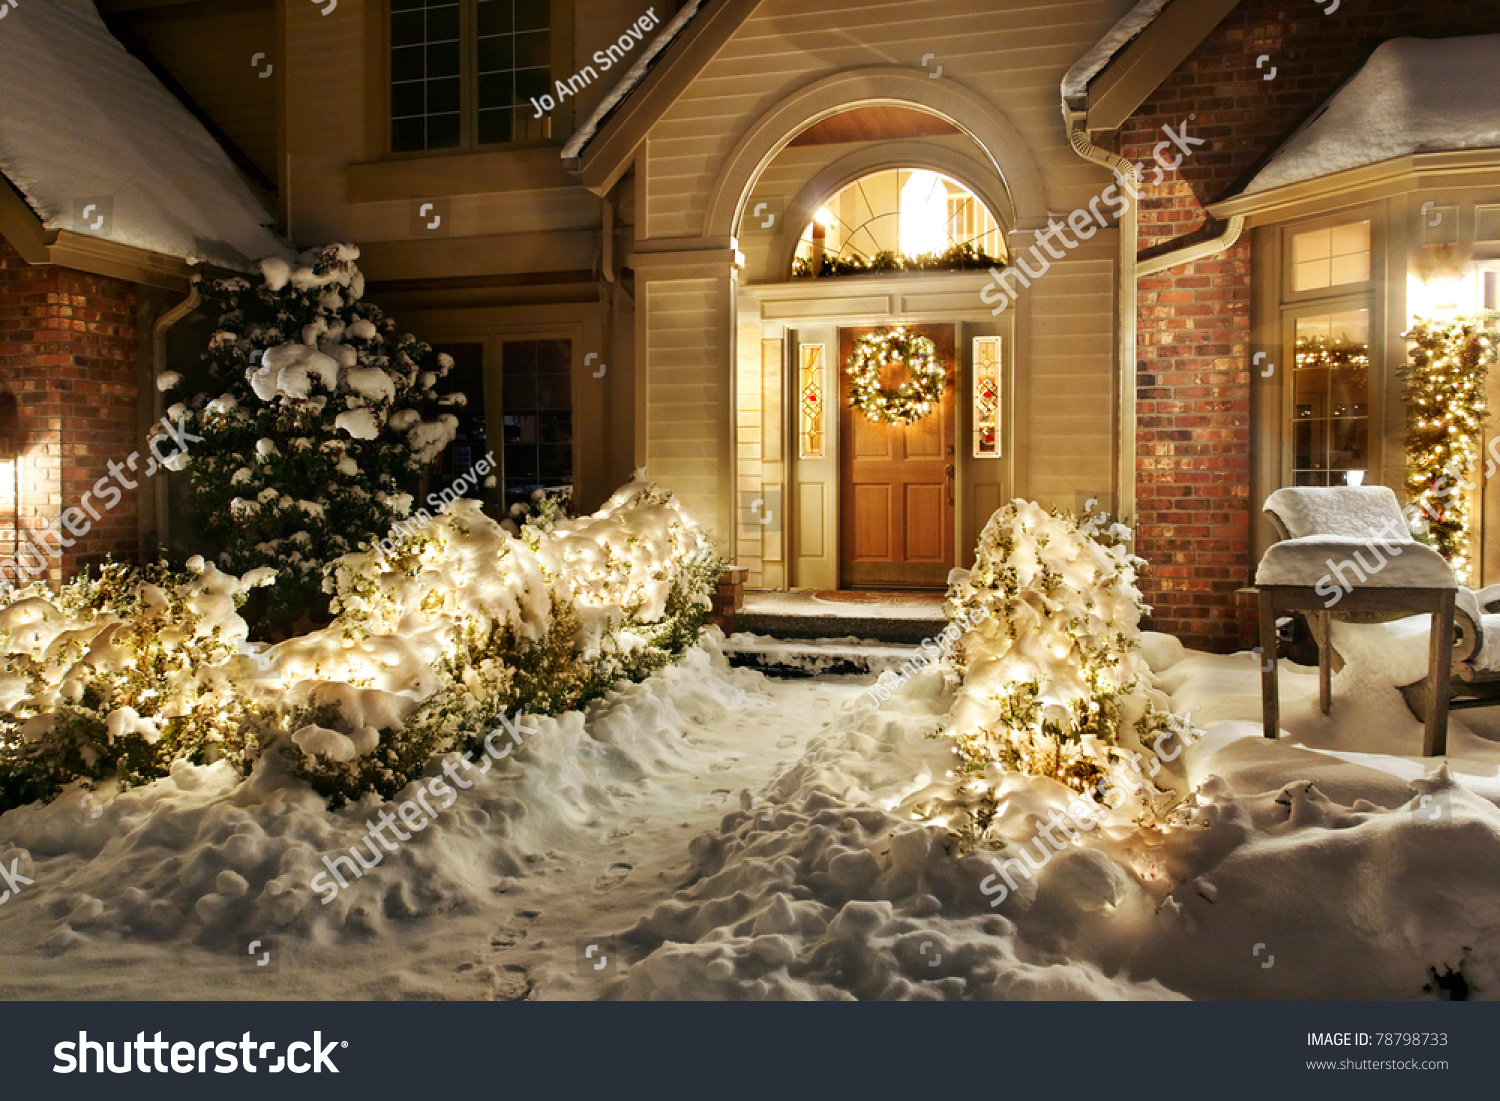 Front door christmas lights - Outside Christmas Lights Line Path To A Front Door On A Snowy Evening